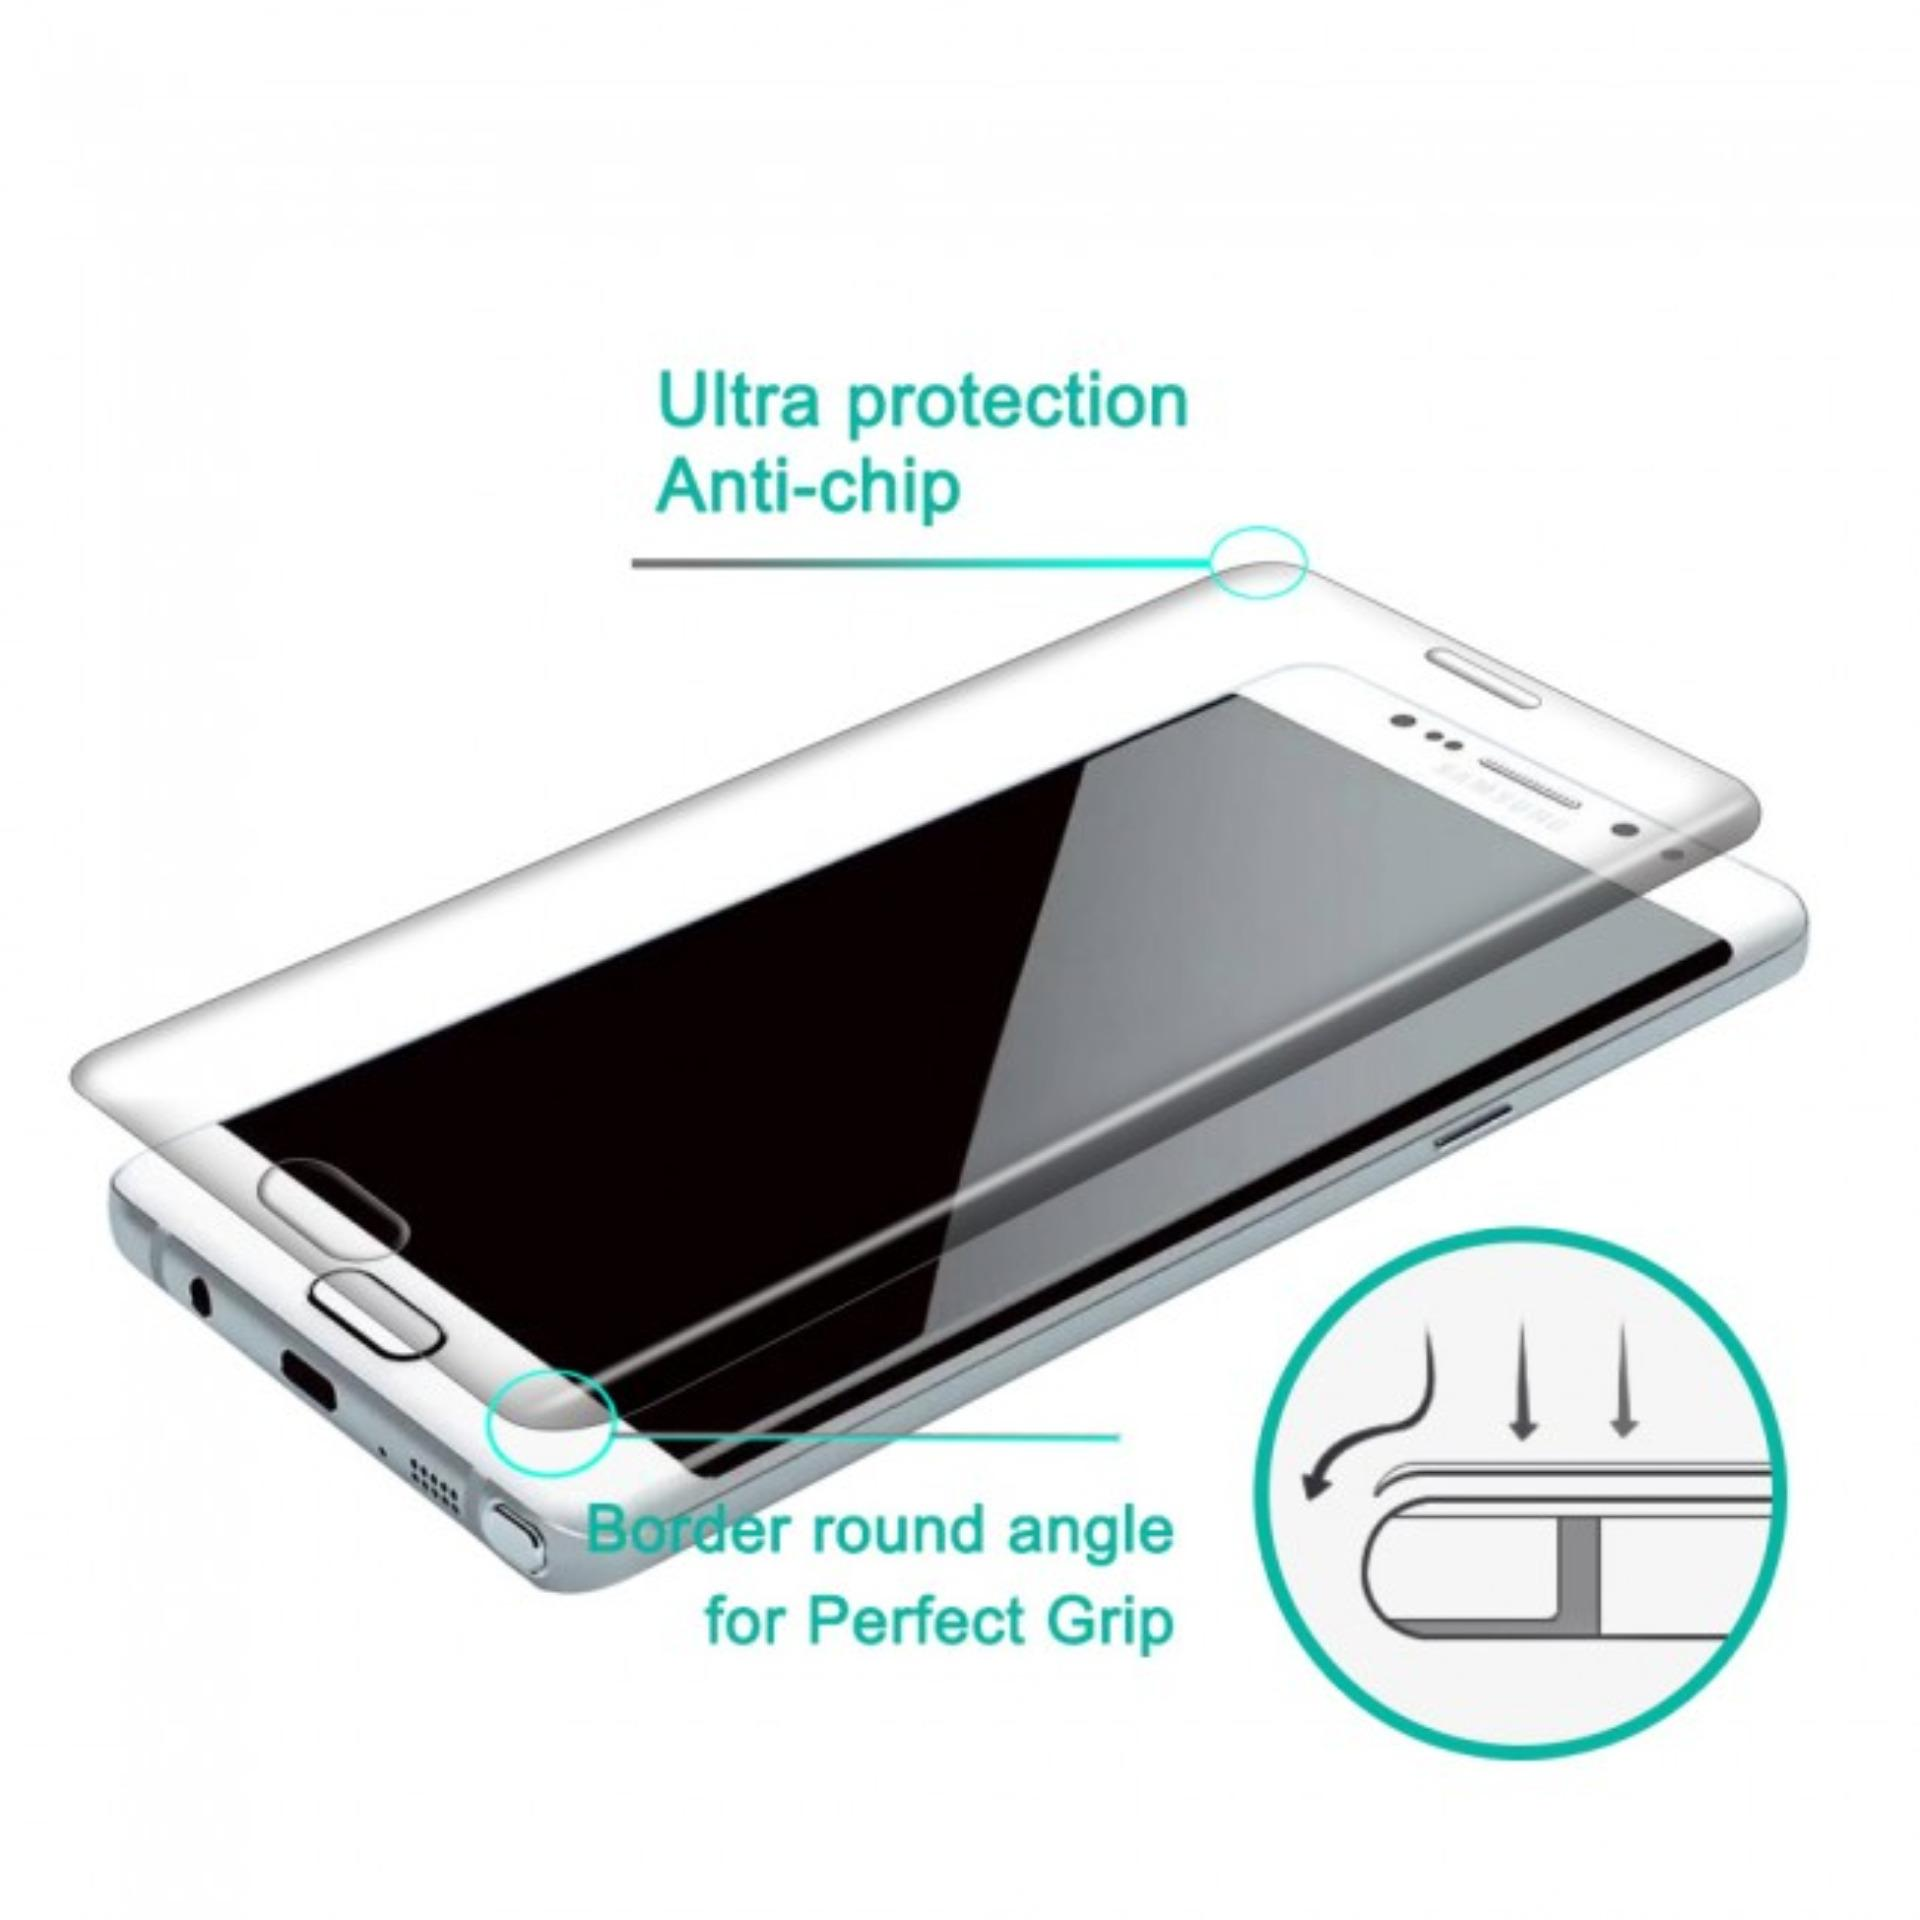 Detail Gambar Grace Samsung Galaxy Note FE Fan Edition 5 7 inch Tempered Glass 3D Curved Full Cover Emas Terbaru